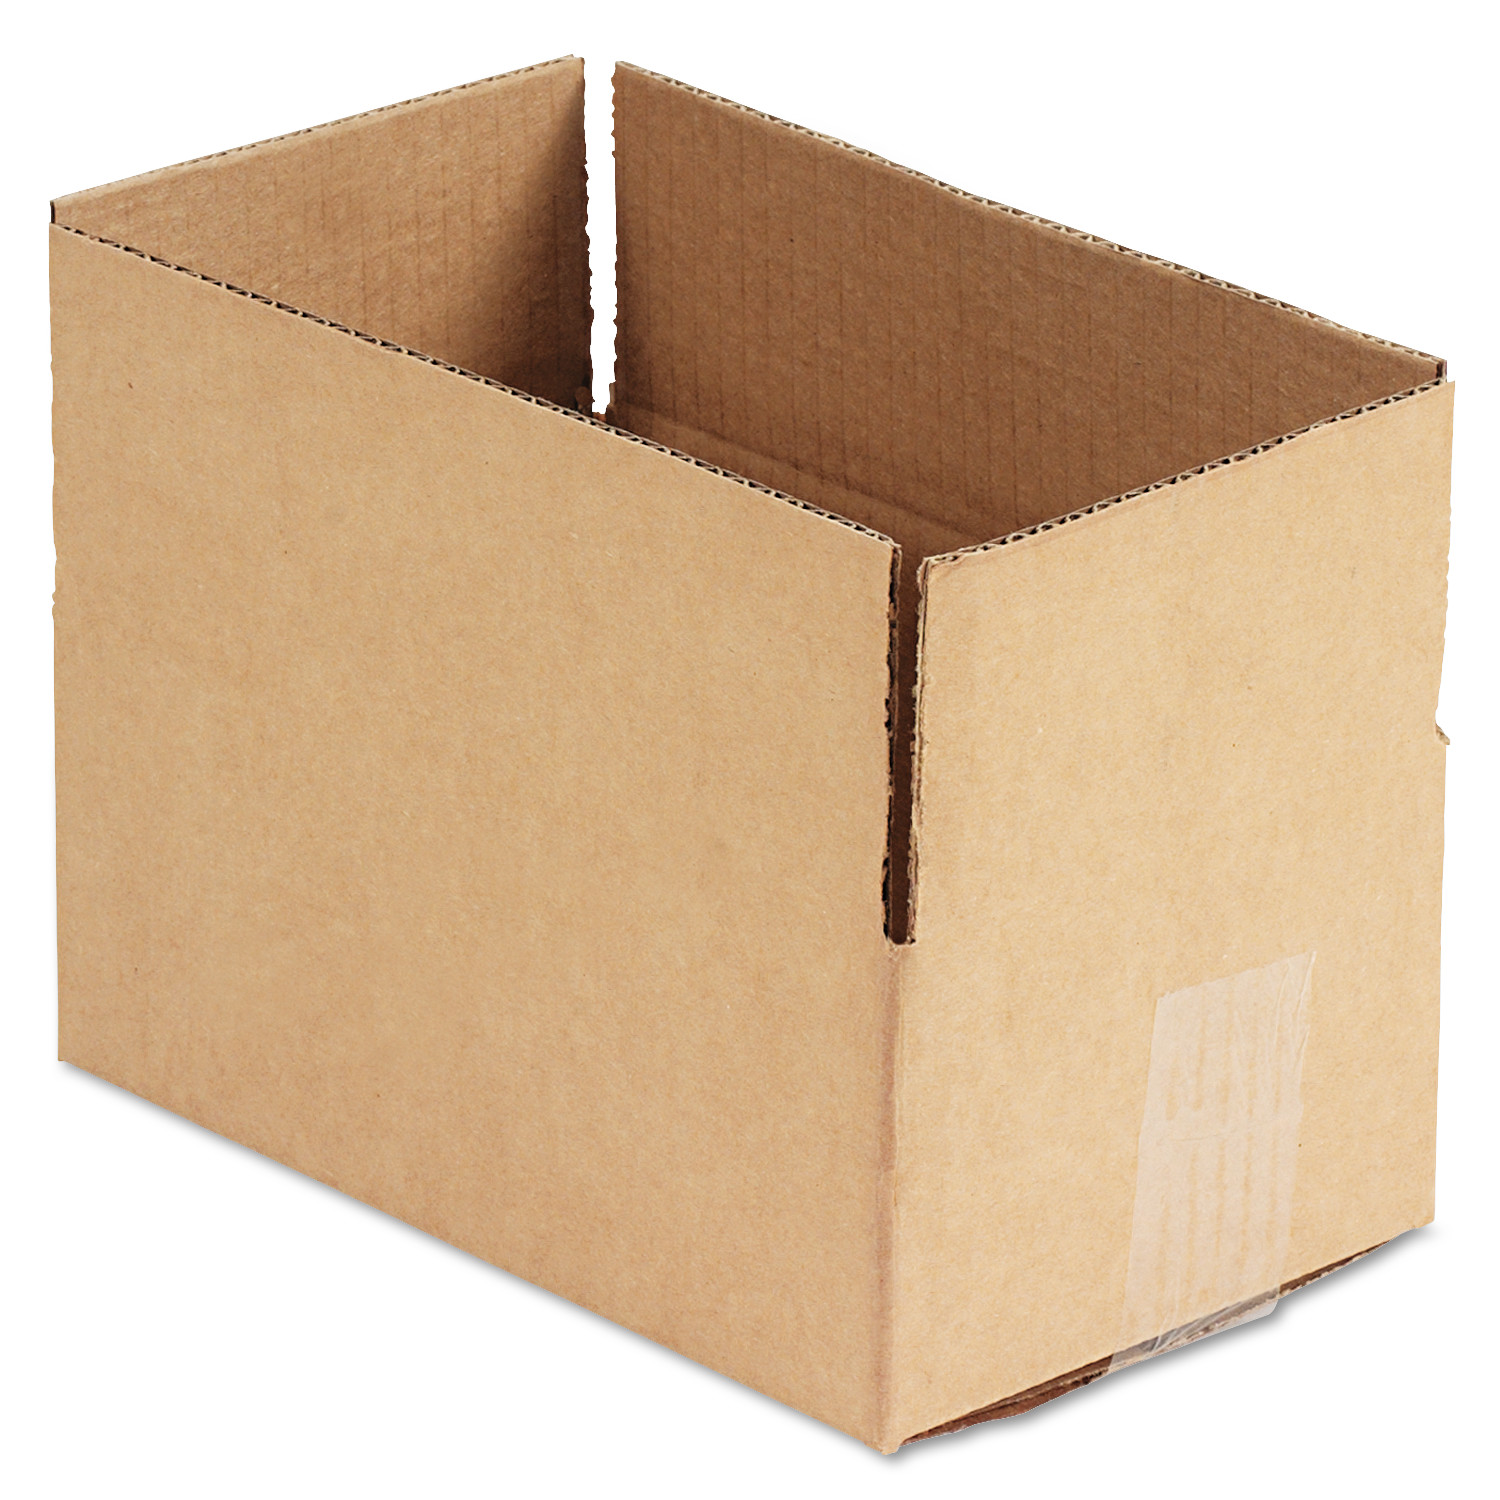 General Supply Brown Corrugated - Fixed-Depth Shipping Boxes, 10l x 6w x 4h, 25/Bundle -UFS1064